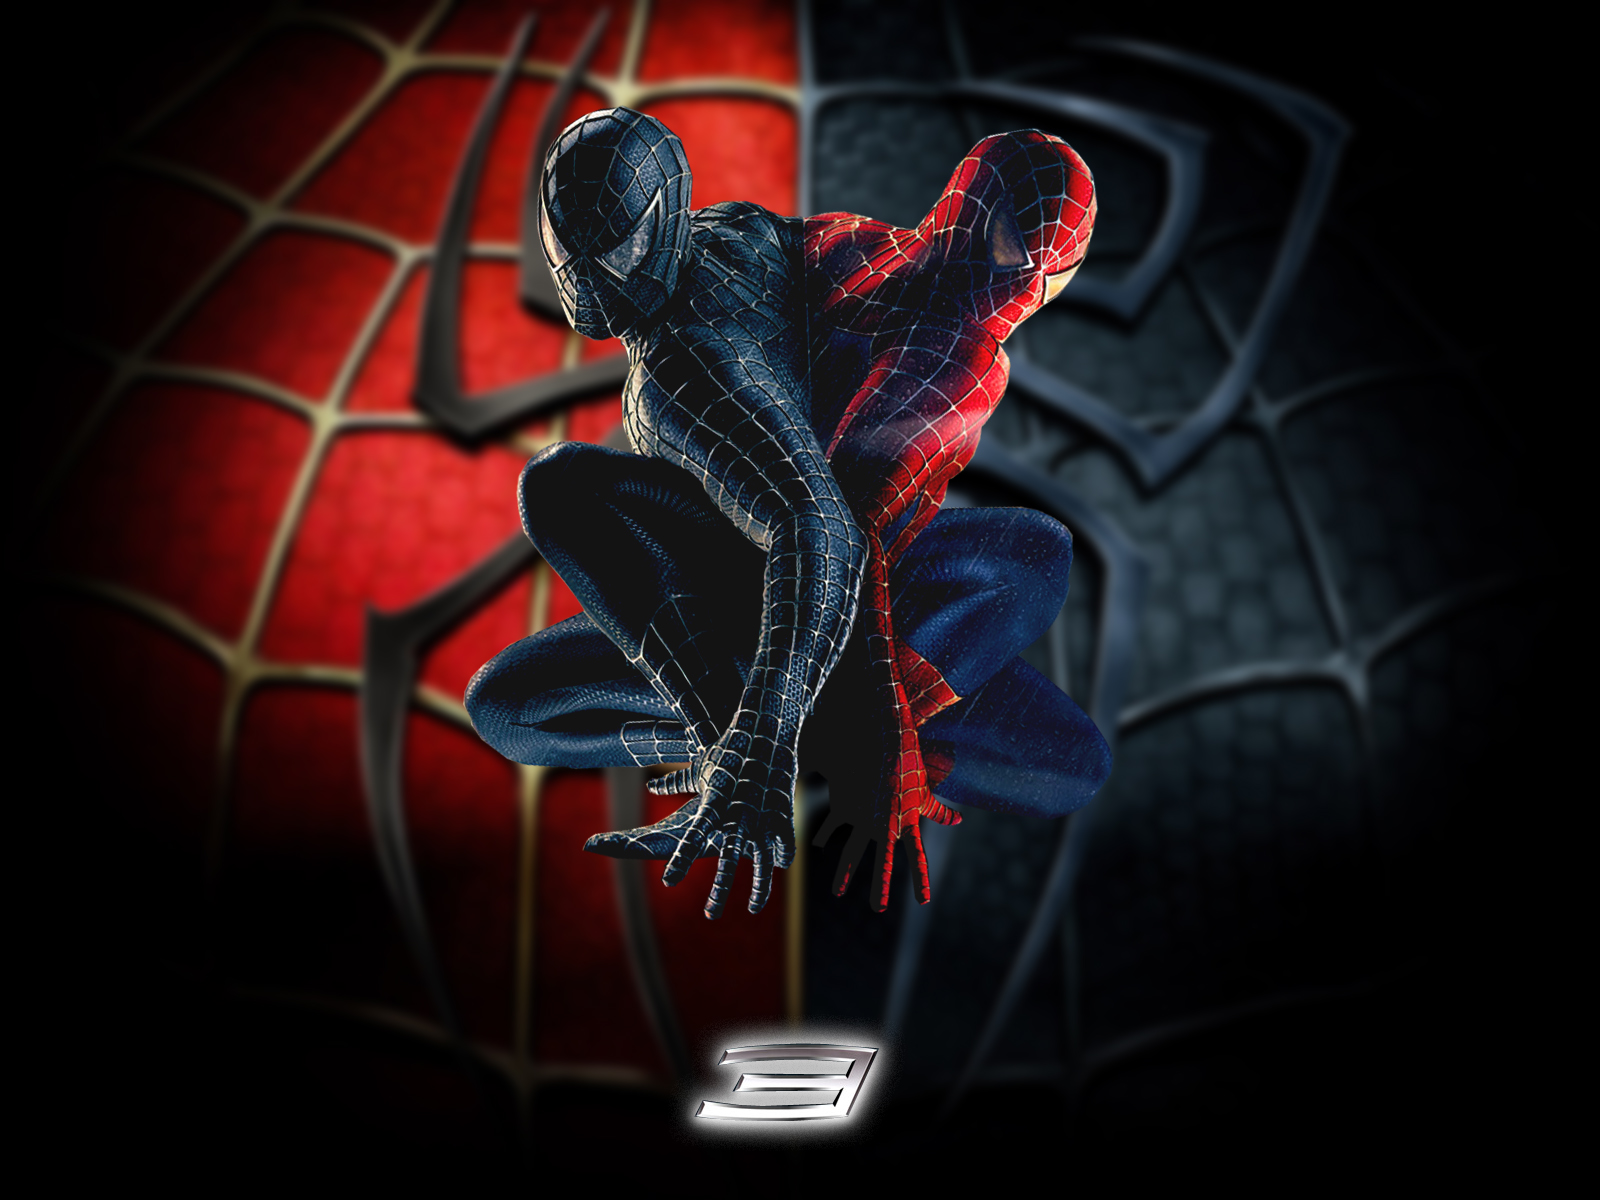 wallpapers of spiderman 4 - sf wallpaper